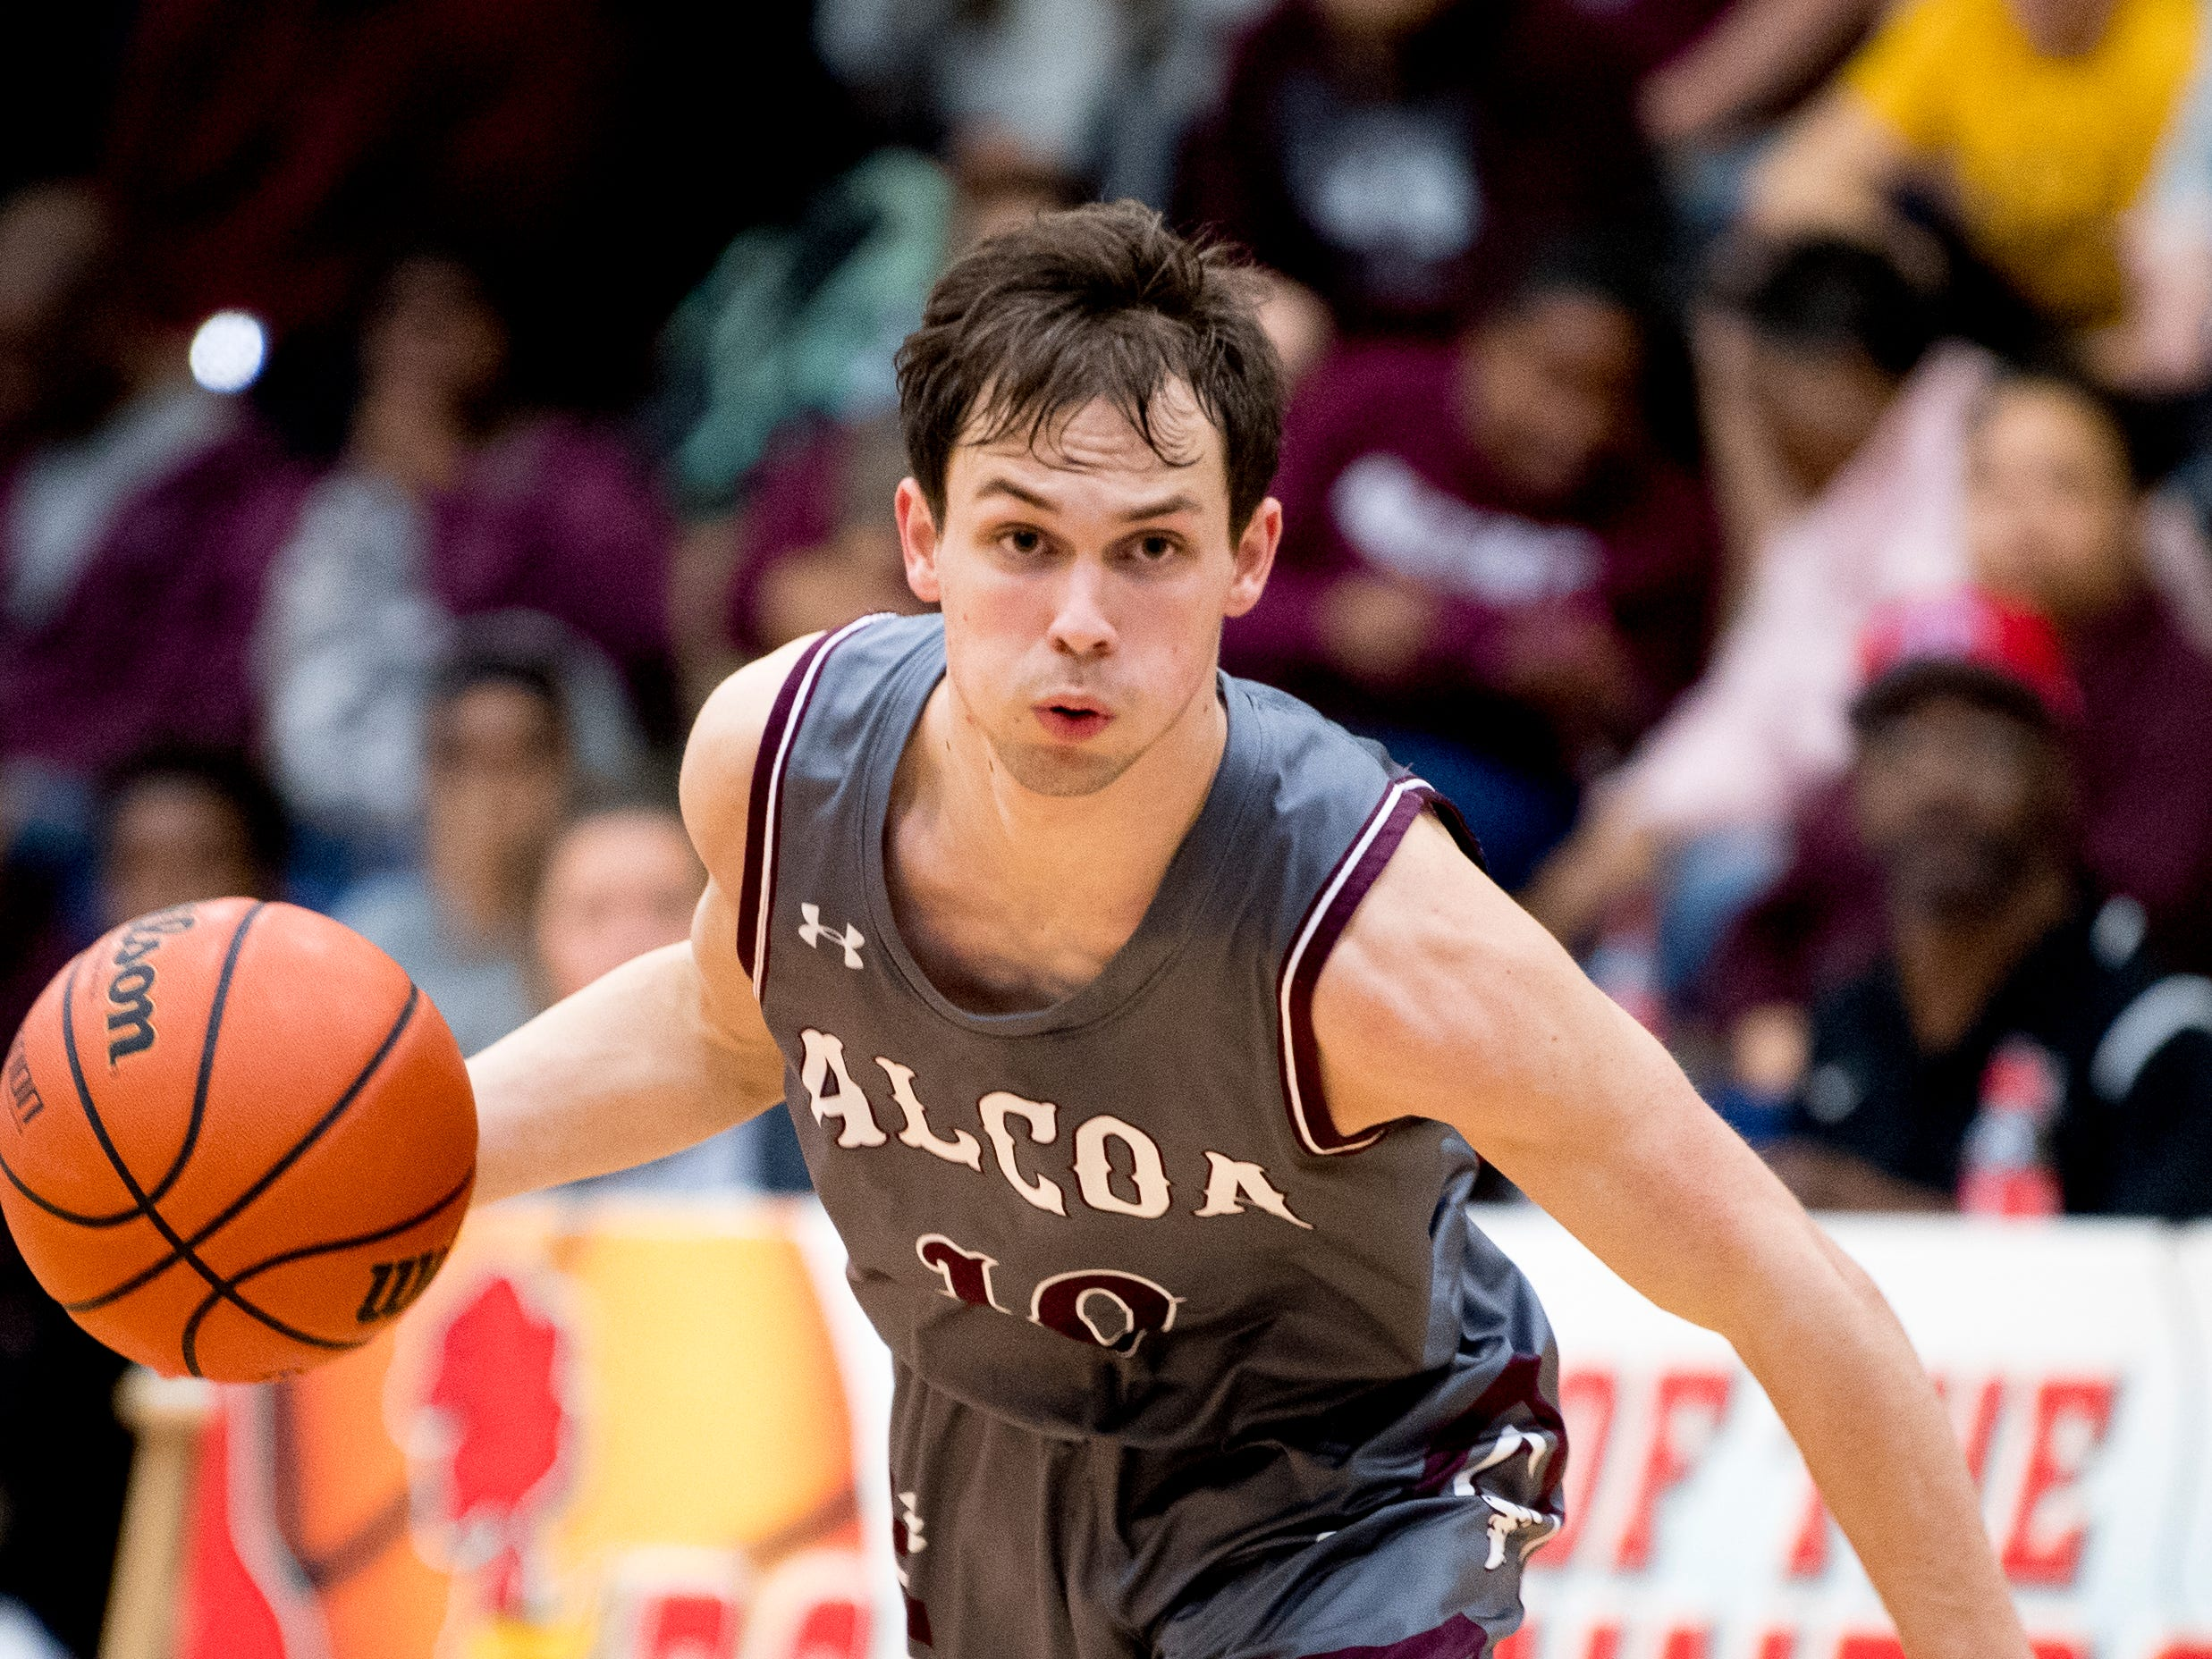 Alcoa's Nate Marsh (10) dribbles down the court during a game between Austin-East and Alcoa at Austin-East High School in Knoxville, Tennessee on Friday, January 18, 2019.